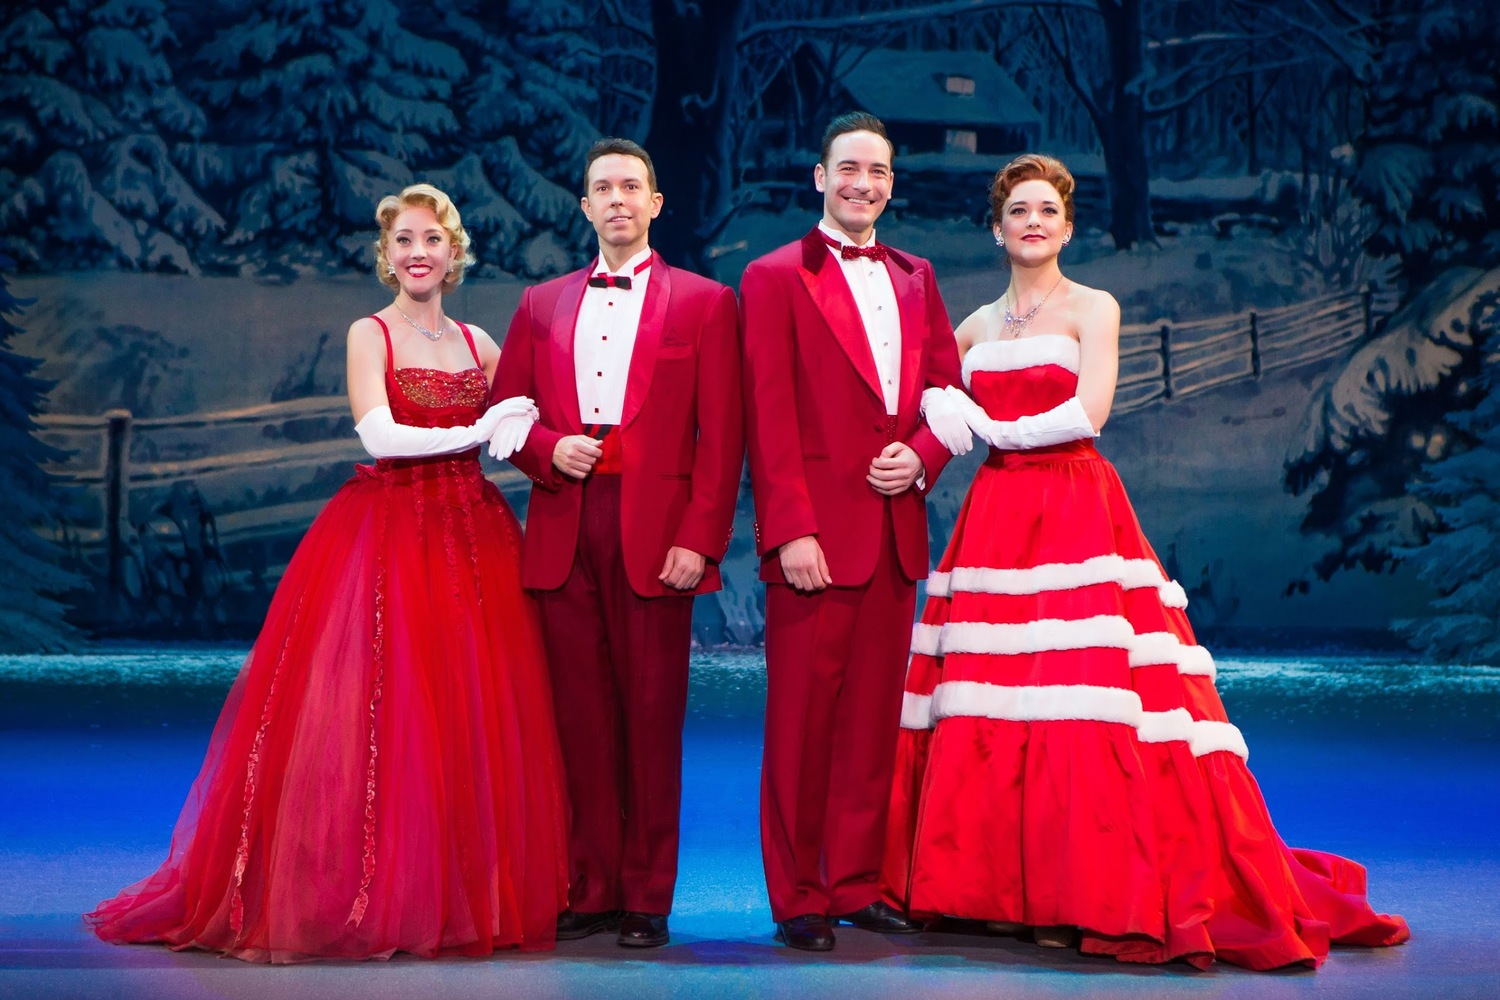 BWW Review: IRVING BERLIN'S WHITE CHRISTMAS - THE MUSICAL at The Cadillac Palace Theatre